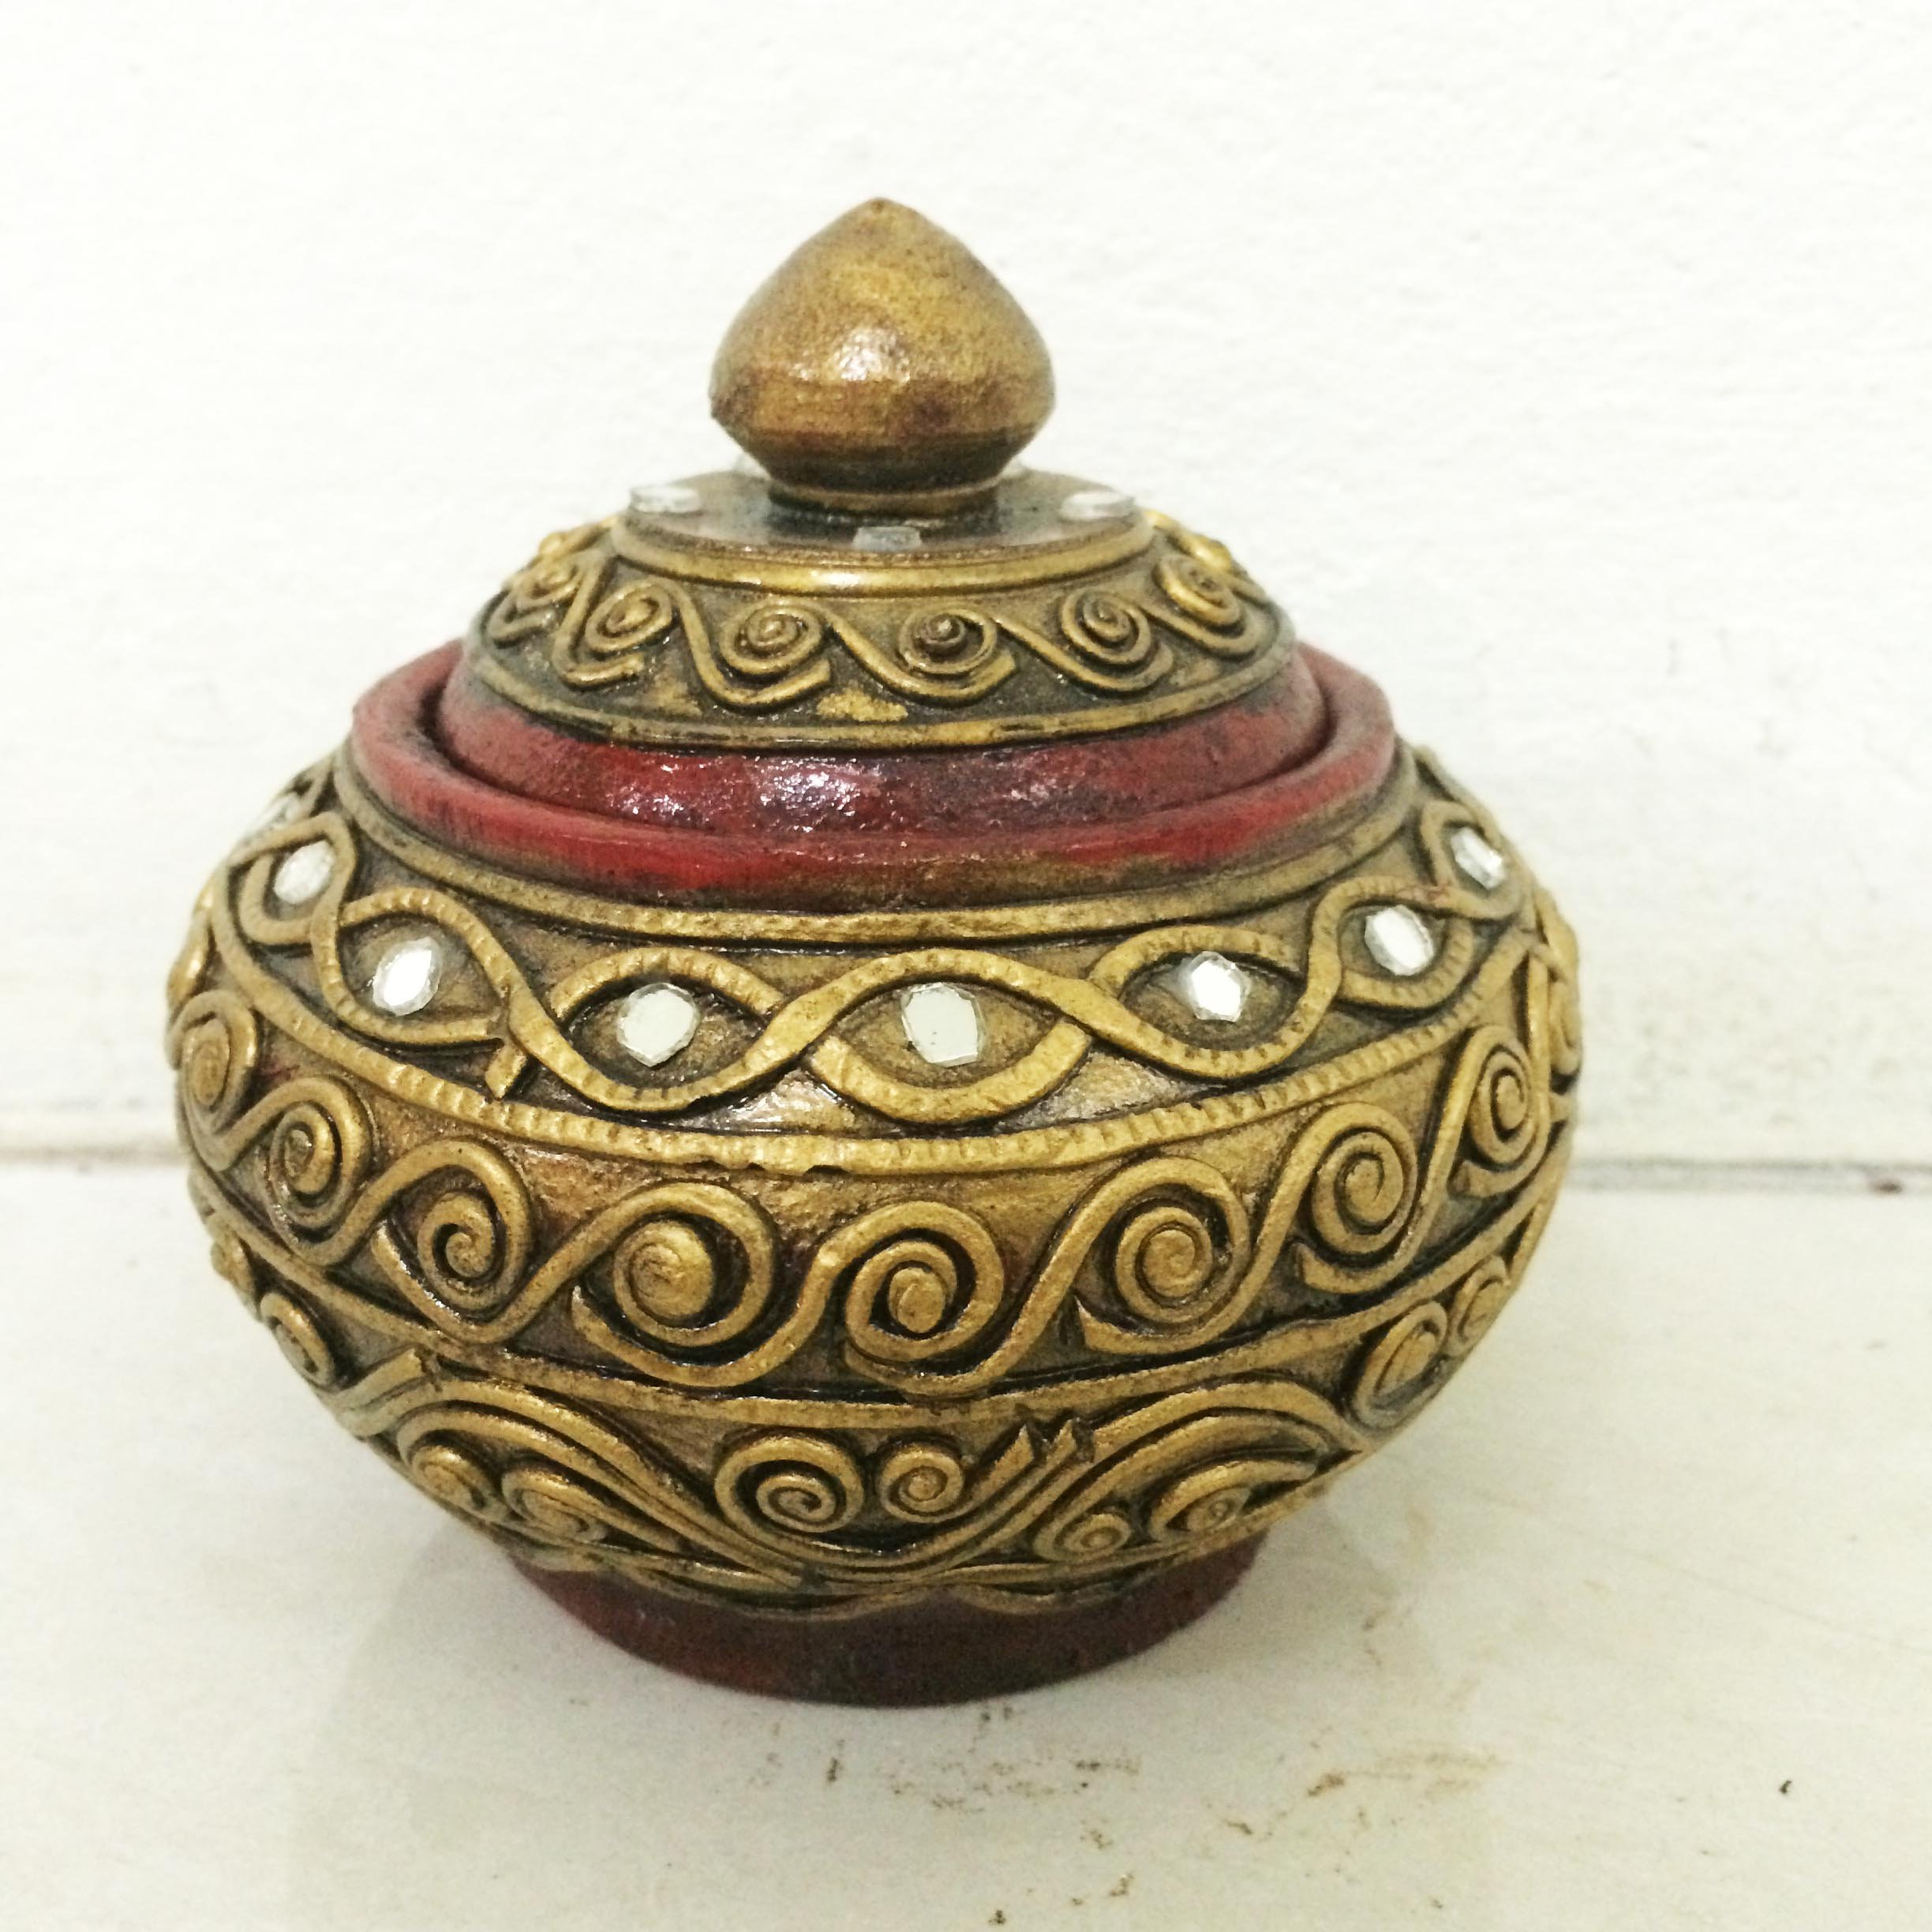 Thai Old Antique Crafted Vintage Old Handmade Carved Jewelry Wooden Trinket Casket BOX by Zeodus